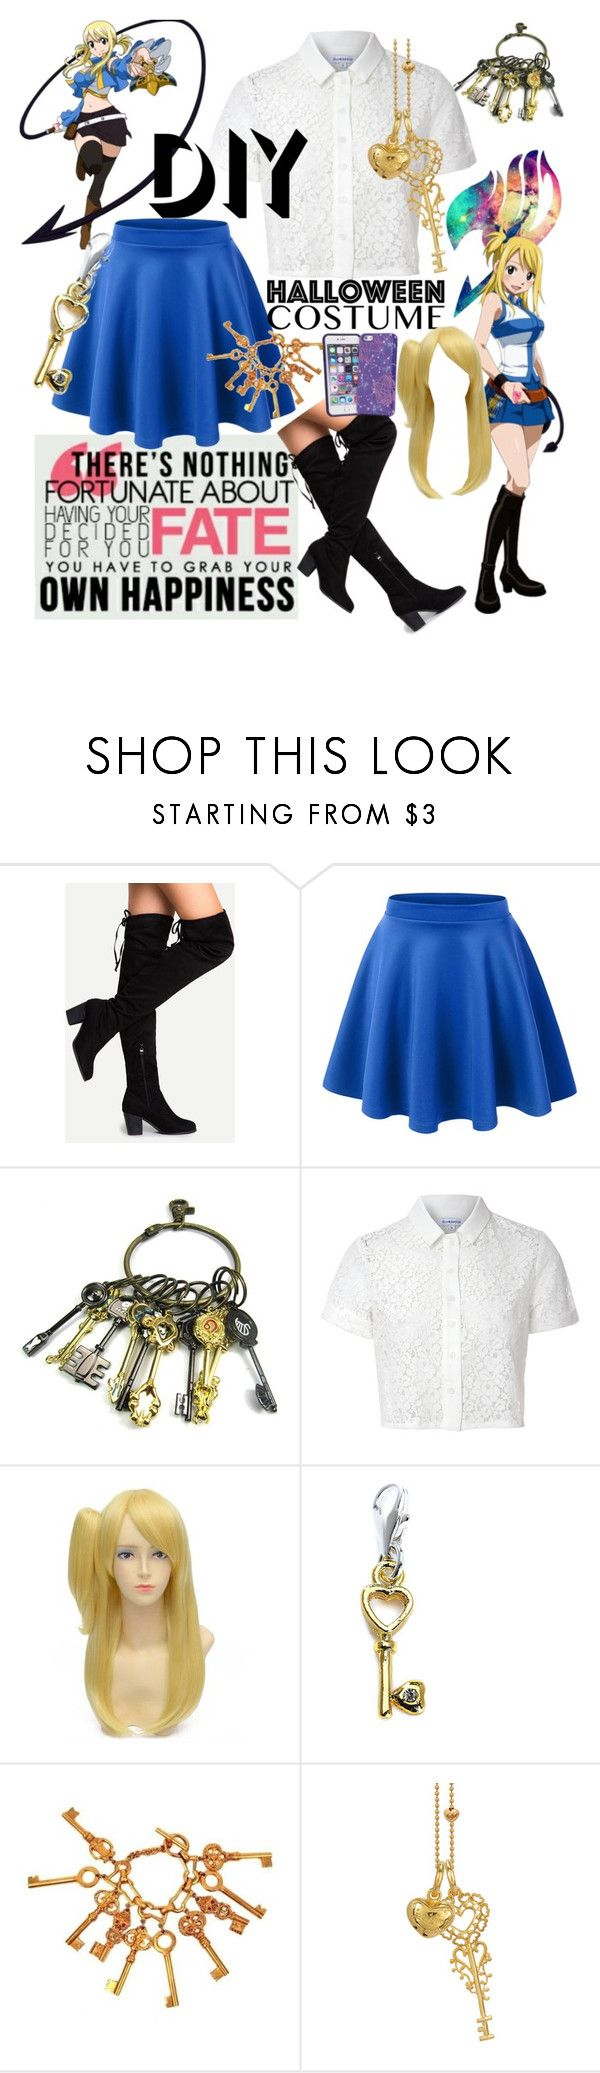 """DIY Lucy Heartfilia Cosplay"" by devilslittleangel ❤ liked on Polyvore featuring Glamorous, Chanel, Blossom Copenhagen, Vera Bradley, halloweencostume and DIYHalloween"